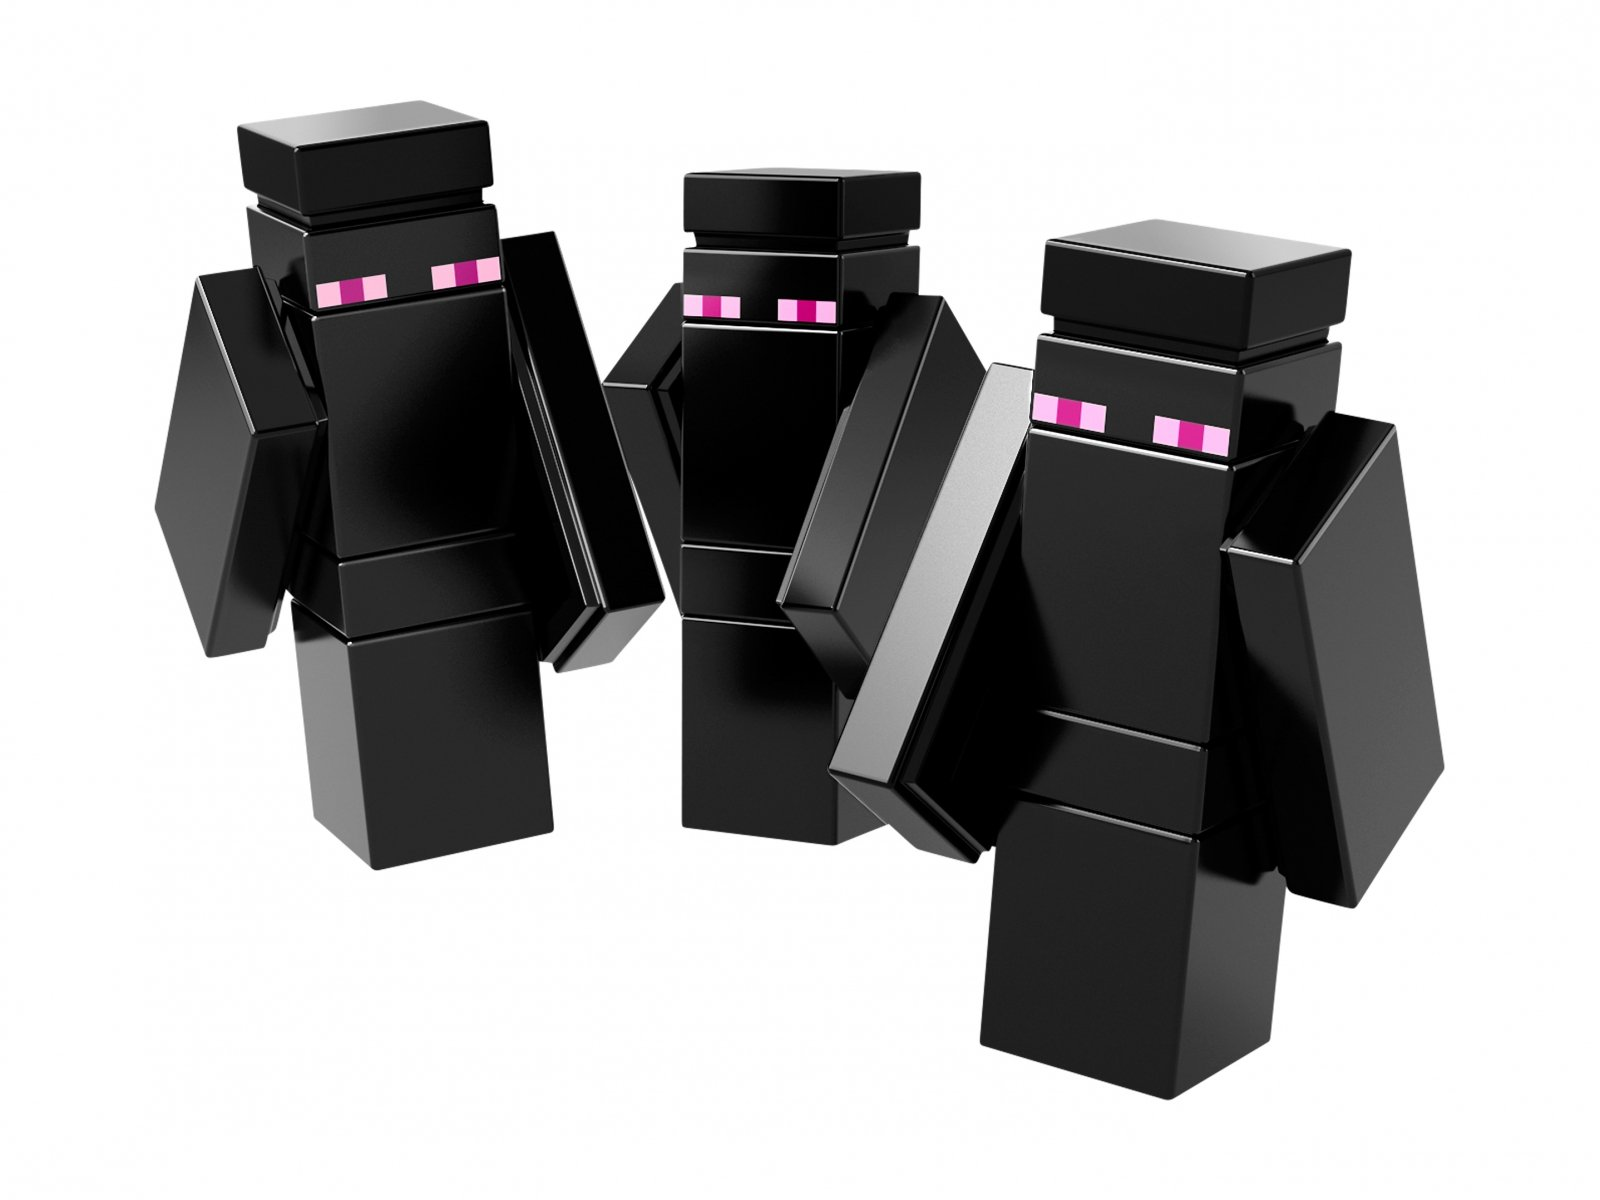 minecraft lego the end instructions